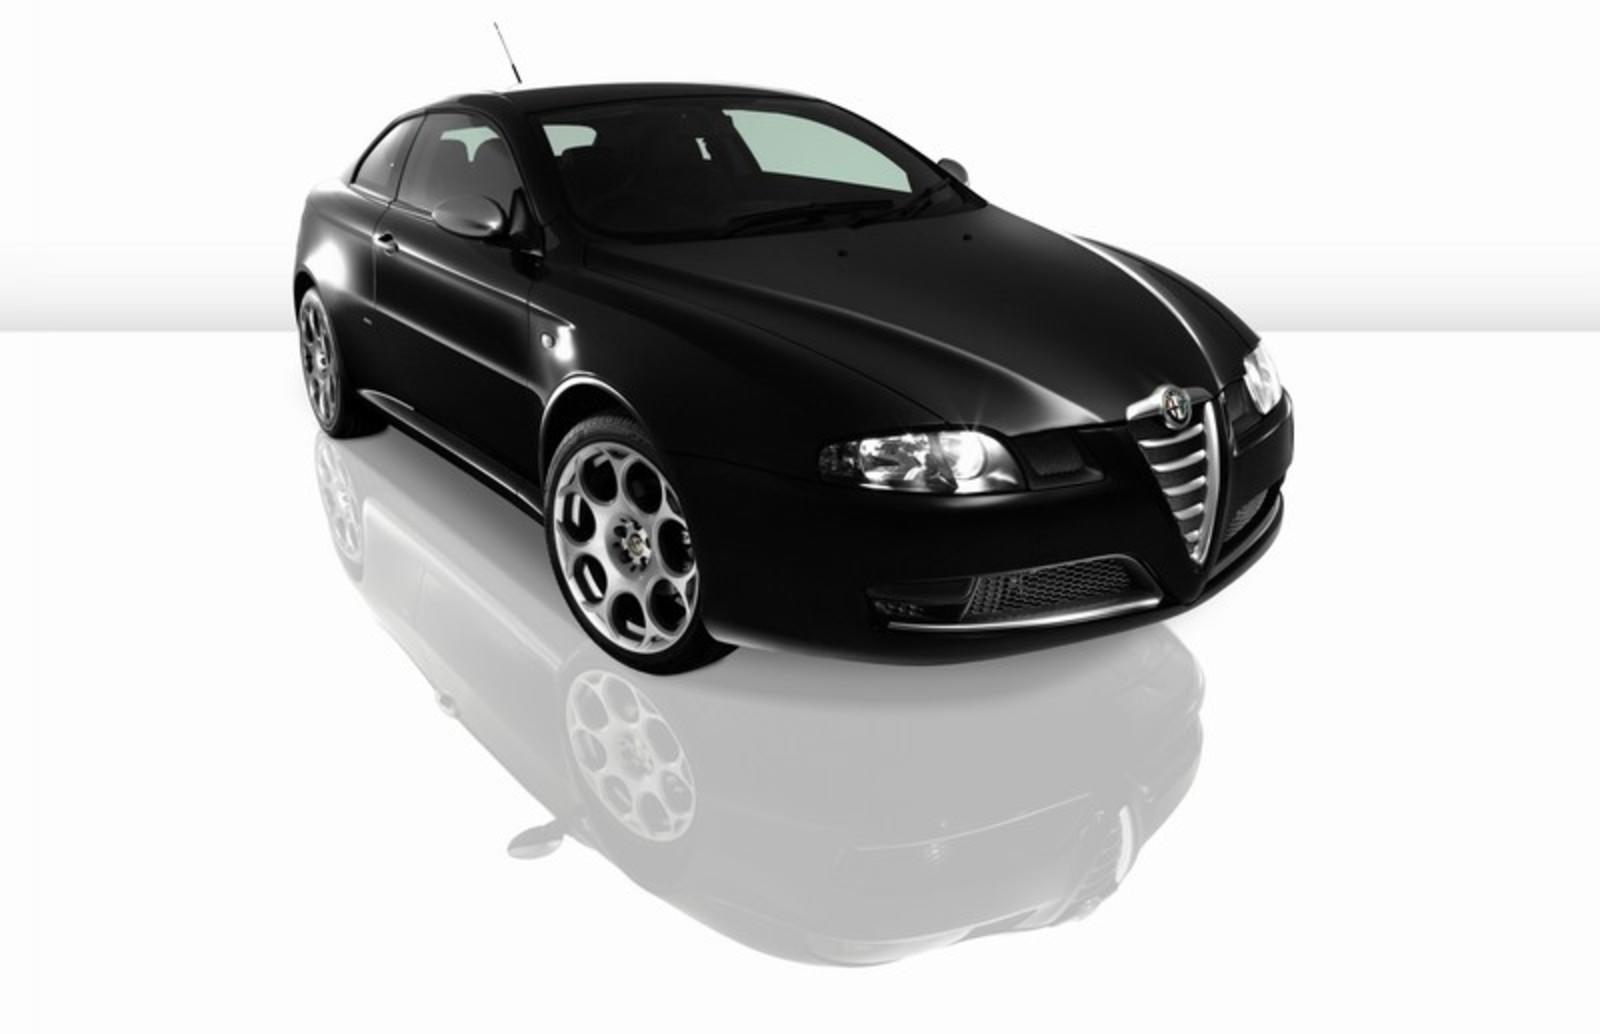 2008 alfa romeo gt blackline review top speed. Black Bedroom Furniture Sets. Home Design Ideas